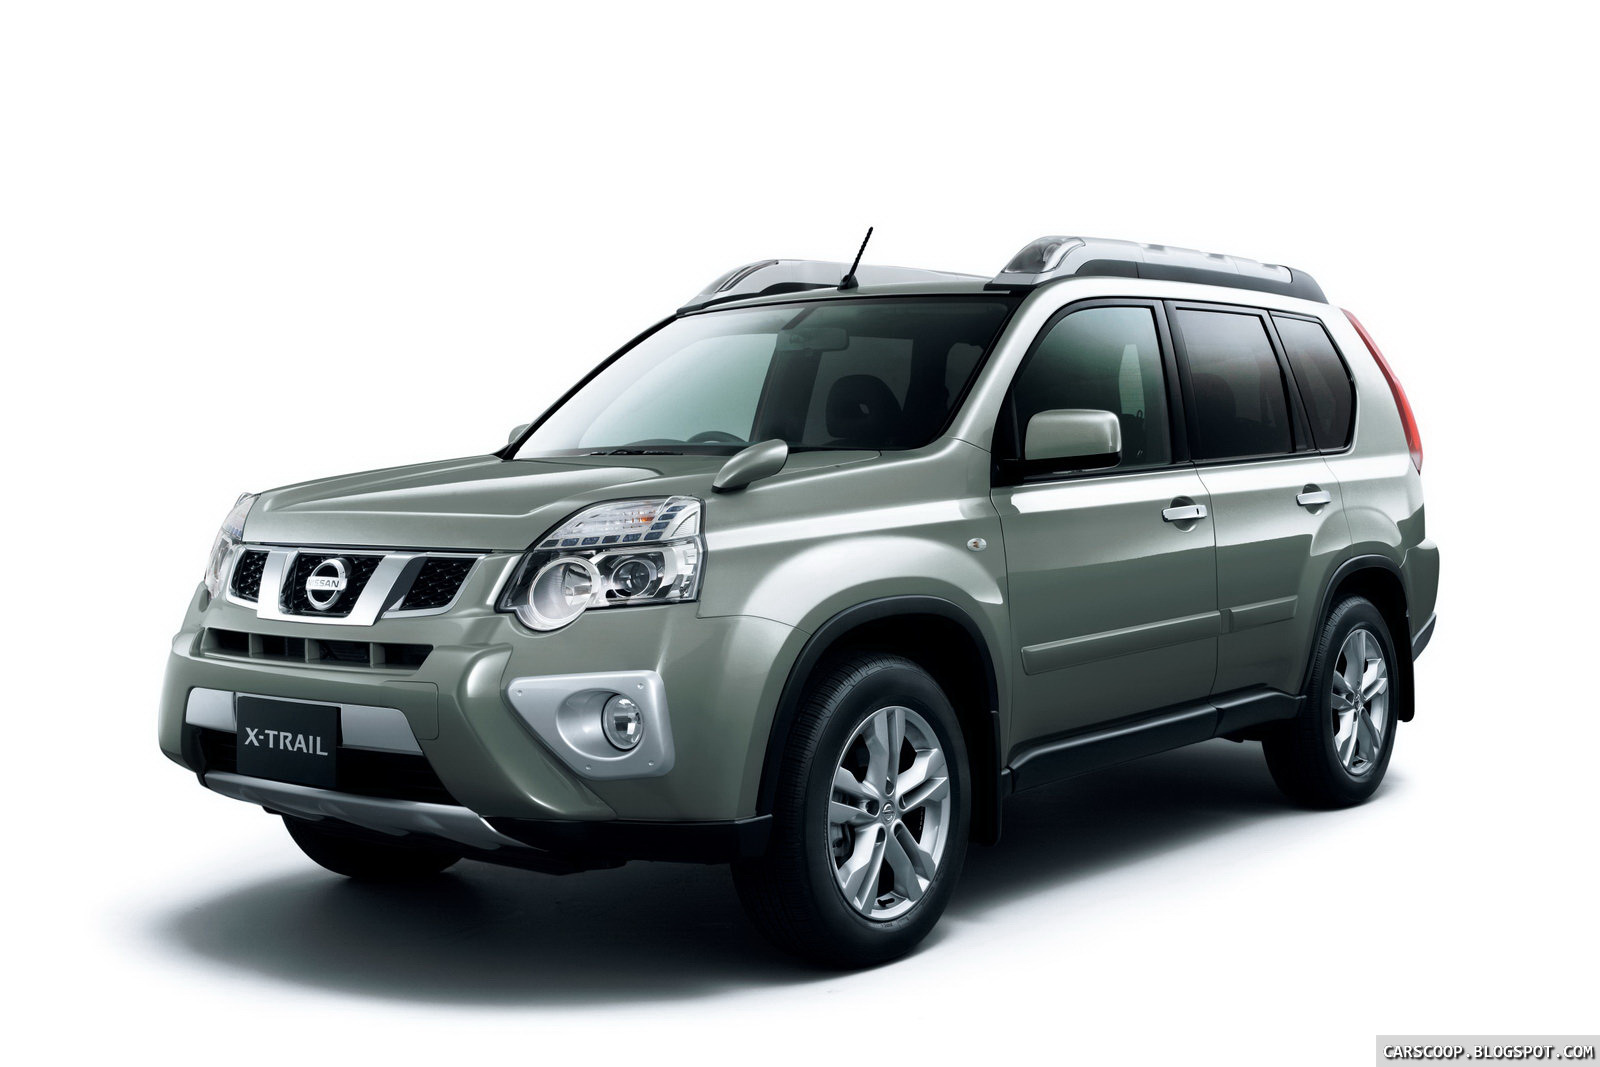 2011 nissan x trail suv facelift breaks cover in japan. Black Bedroom Furniture Sets. Home Design Ideas